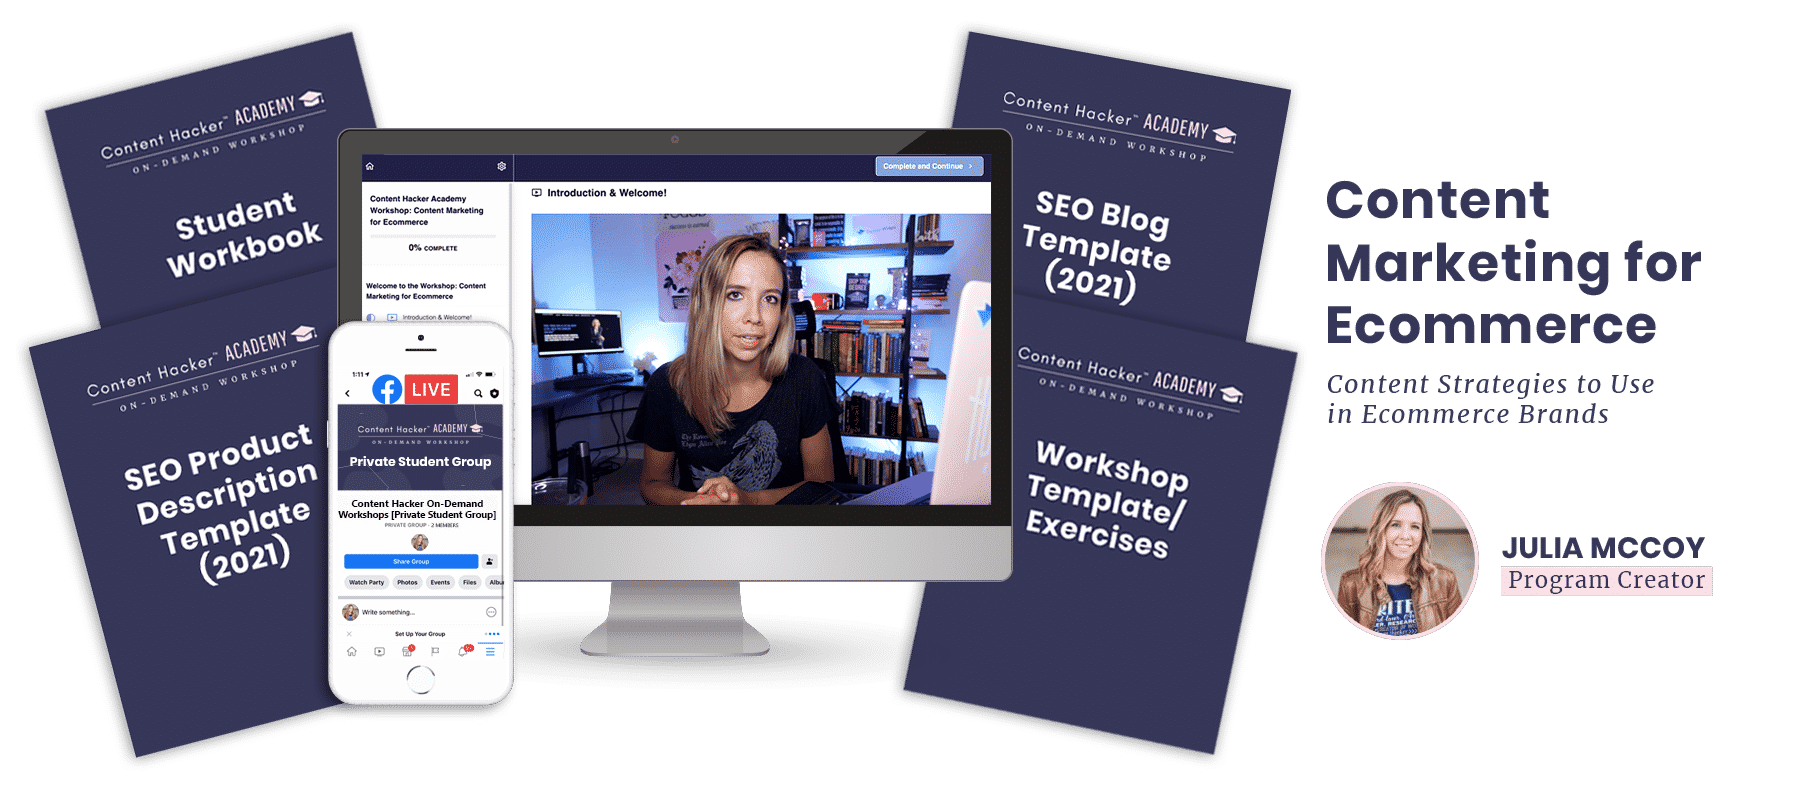 content marketing for ecommerce website